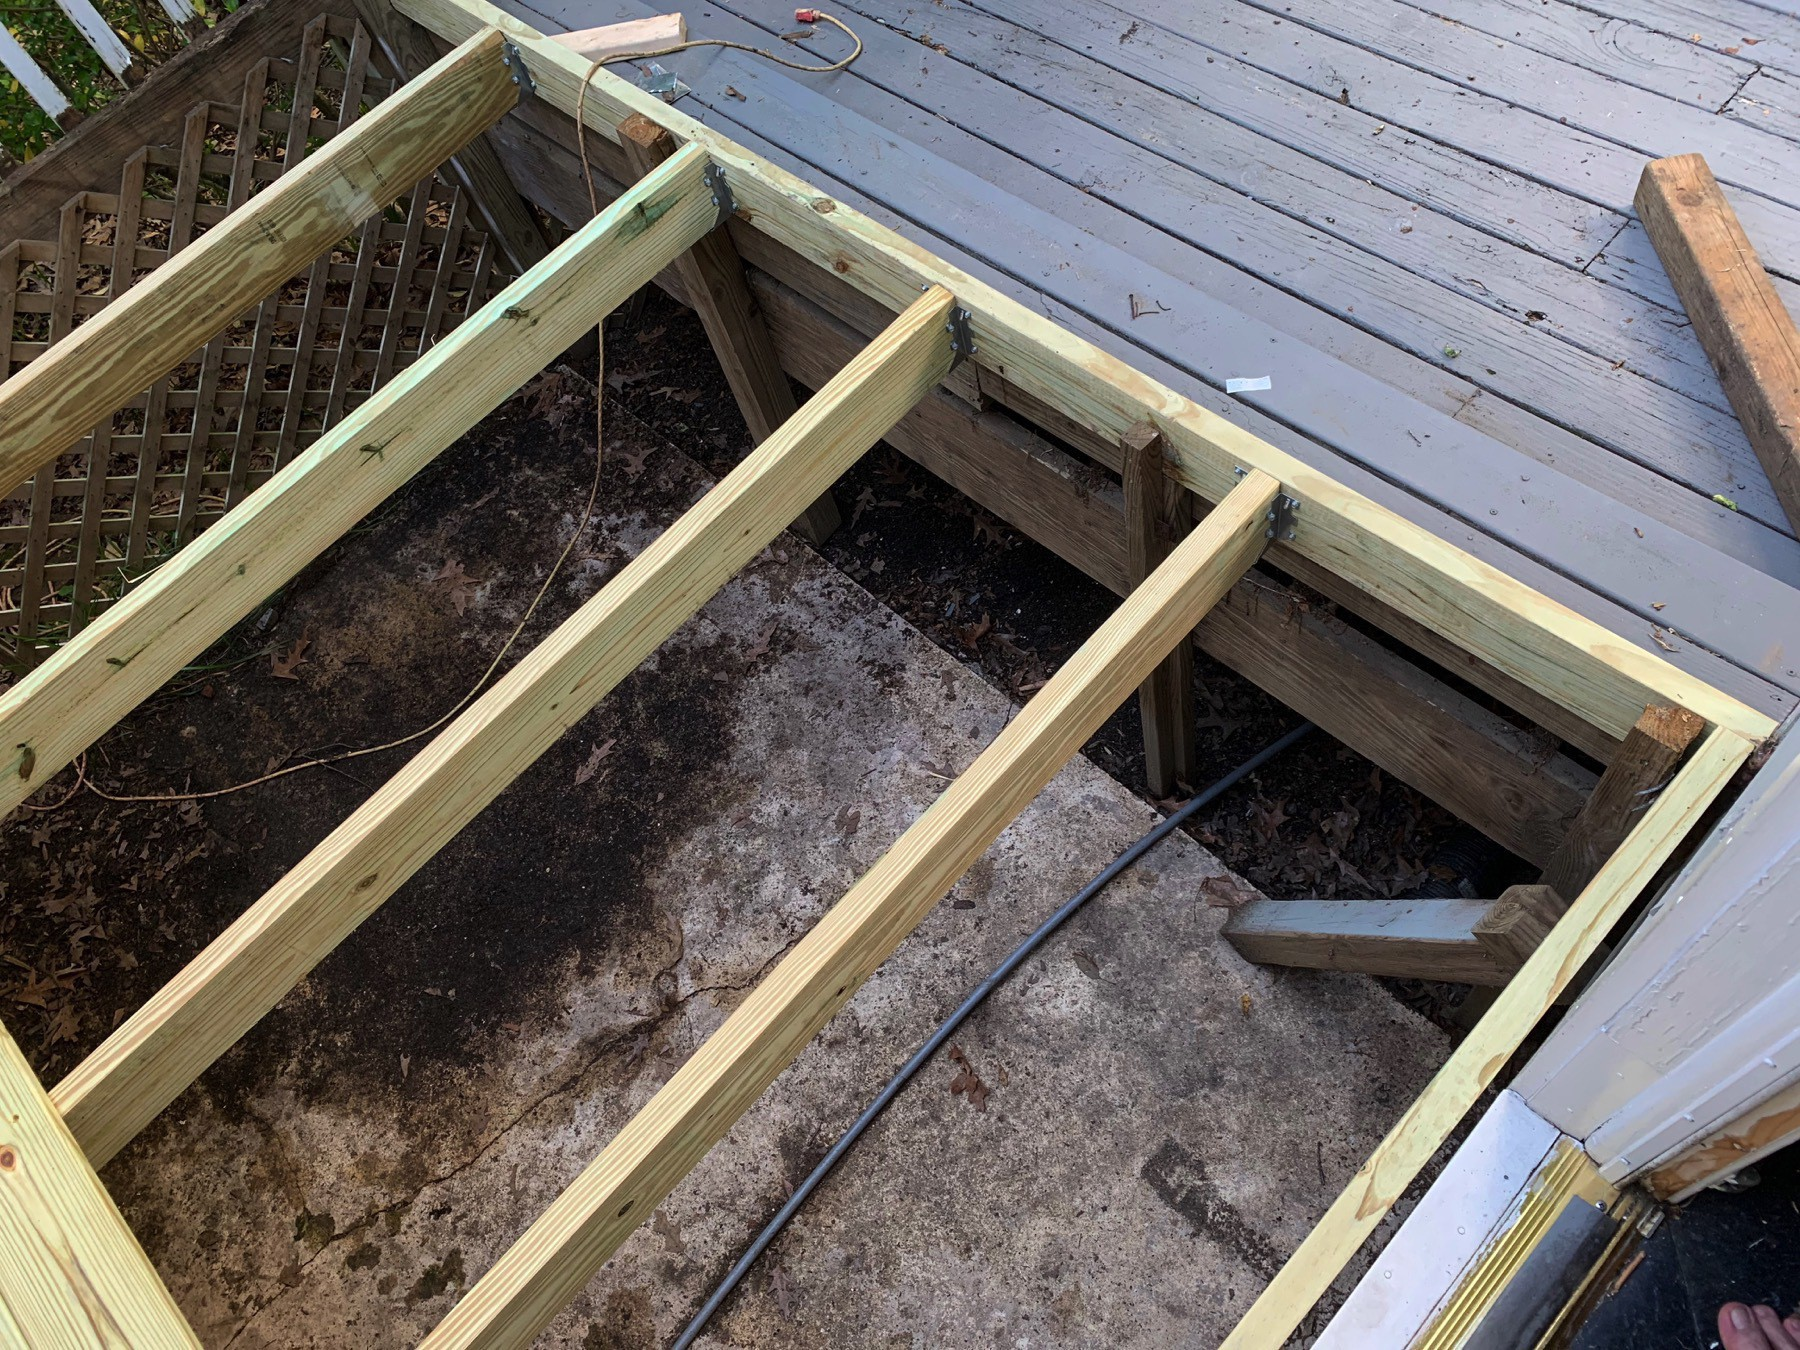 another look from a different angle at the new sleeves, joists, and deck planks we installed